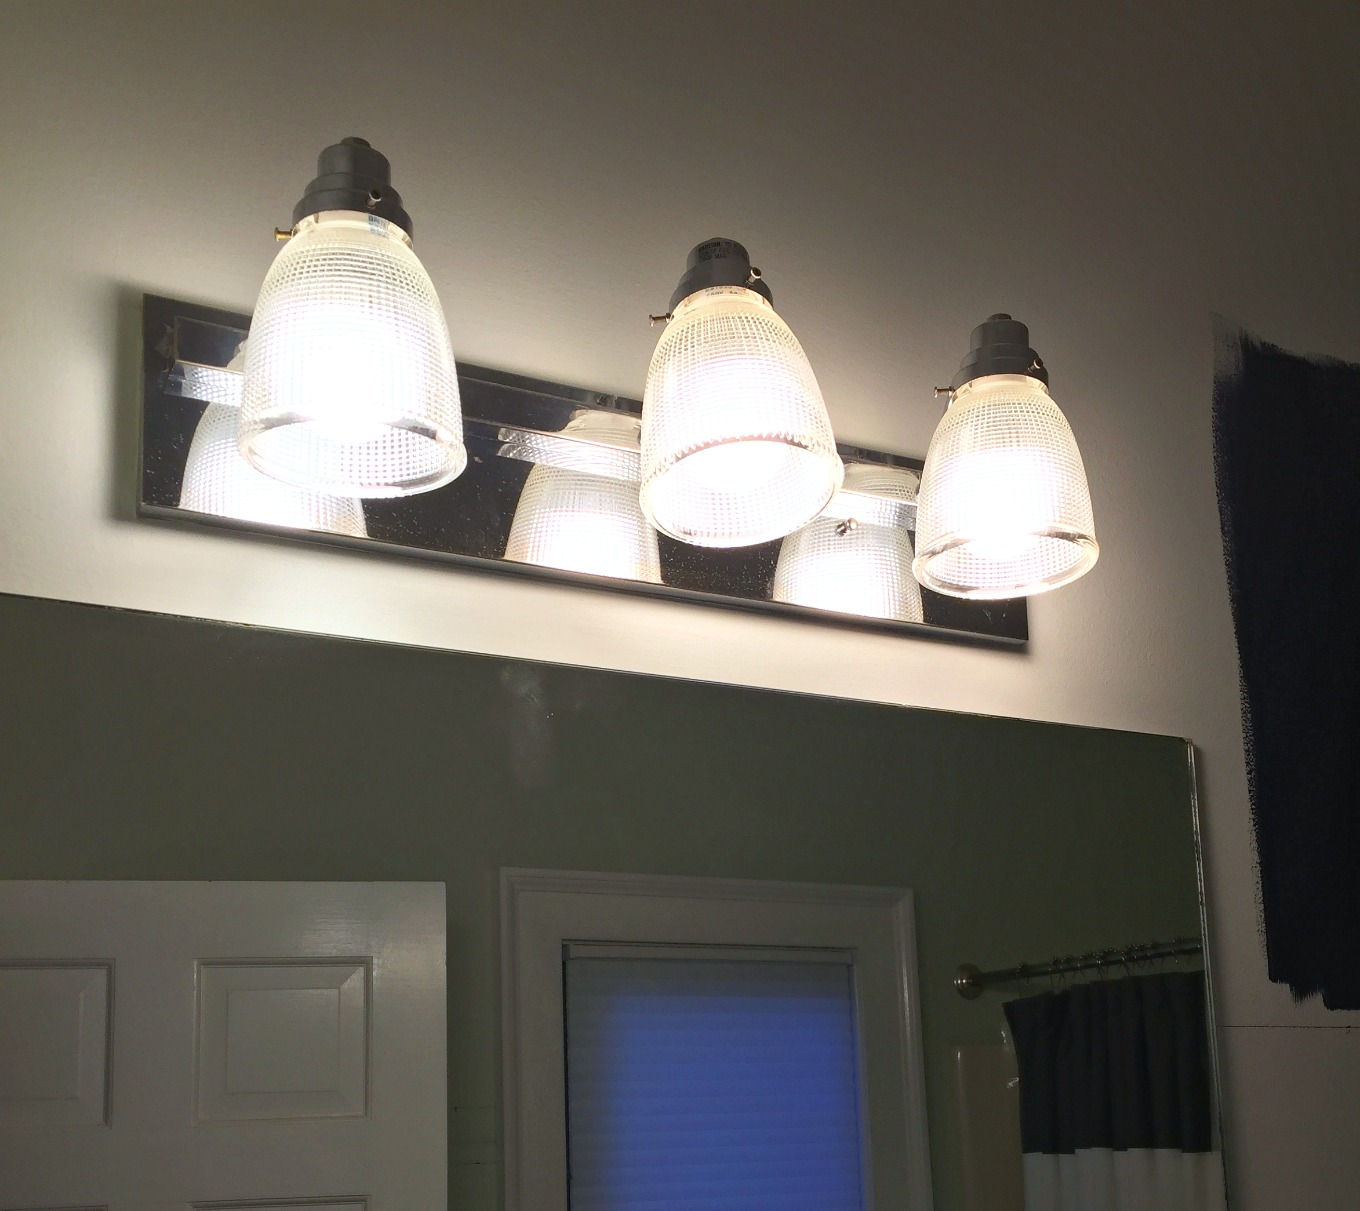 New shades on light fixture - guest bathroom makeover reveal - thediybungalow.com